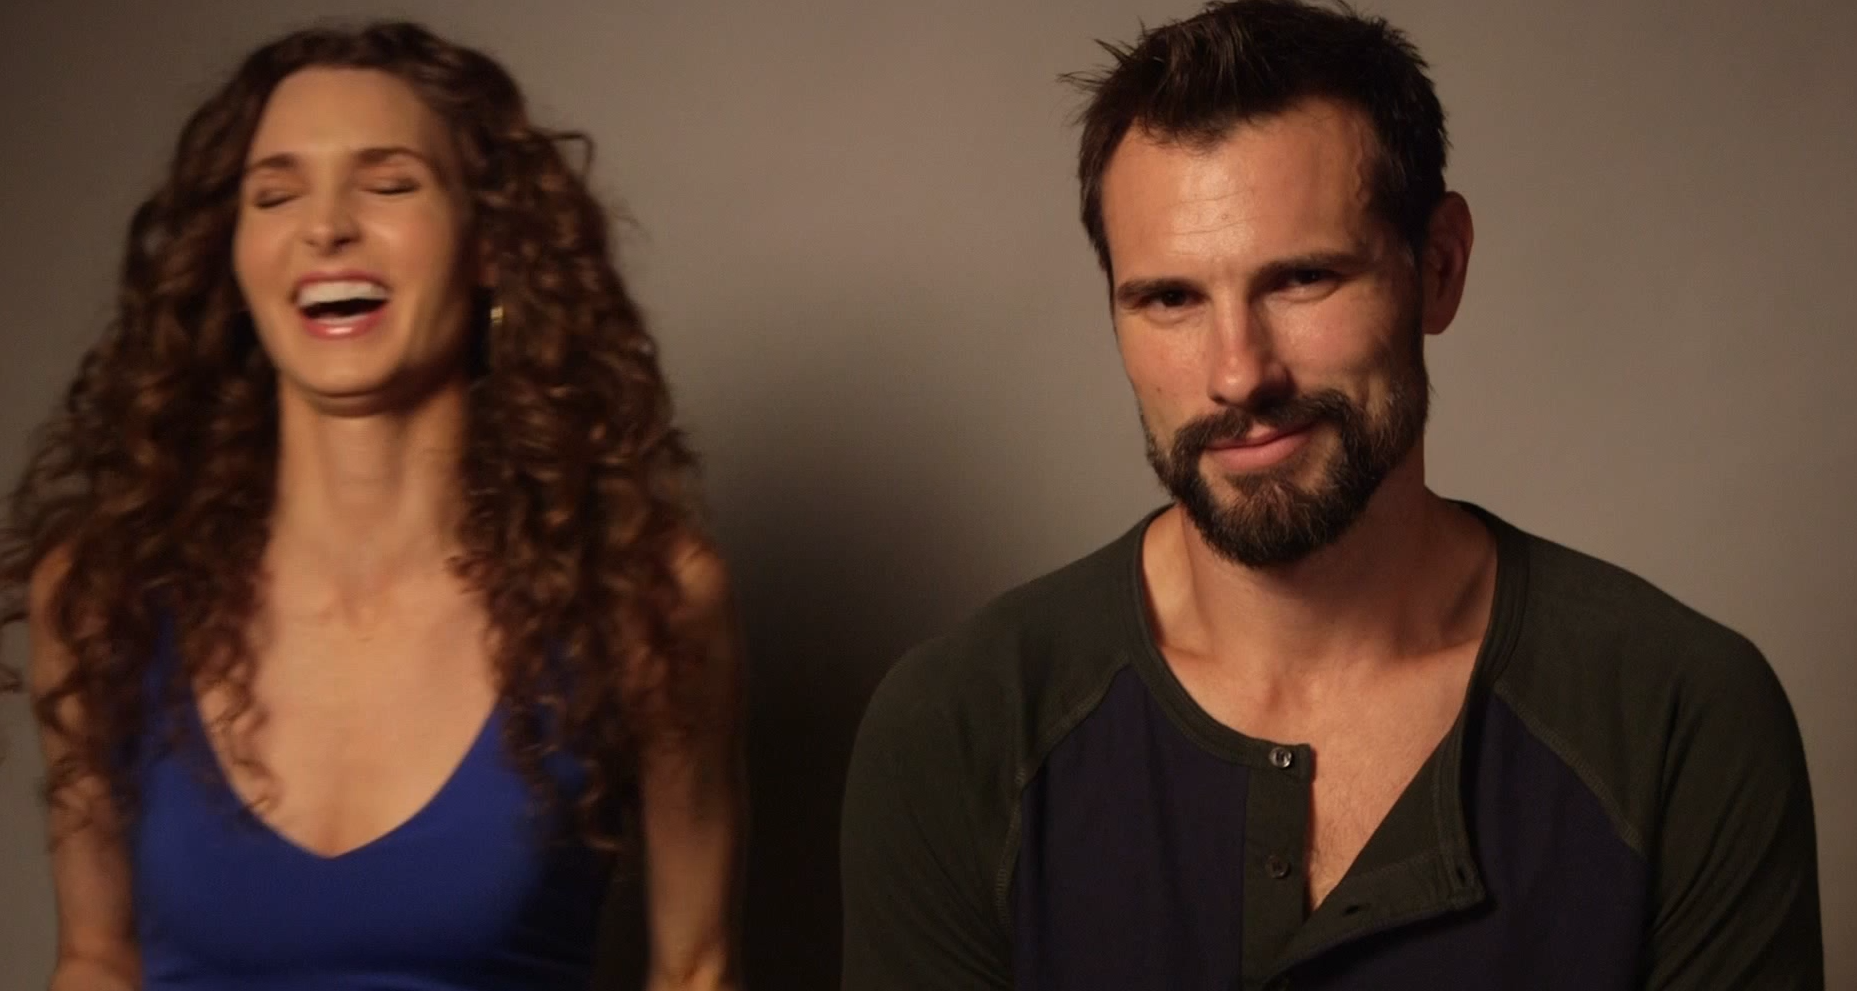 Alicia Minshew and Austin Peck are part of 'Tainted Dreams' all star cast. Courtesy NYC Brand Productions.